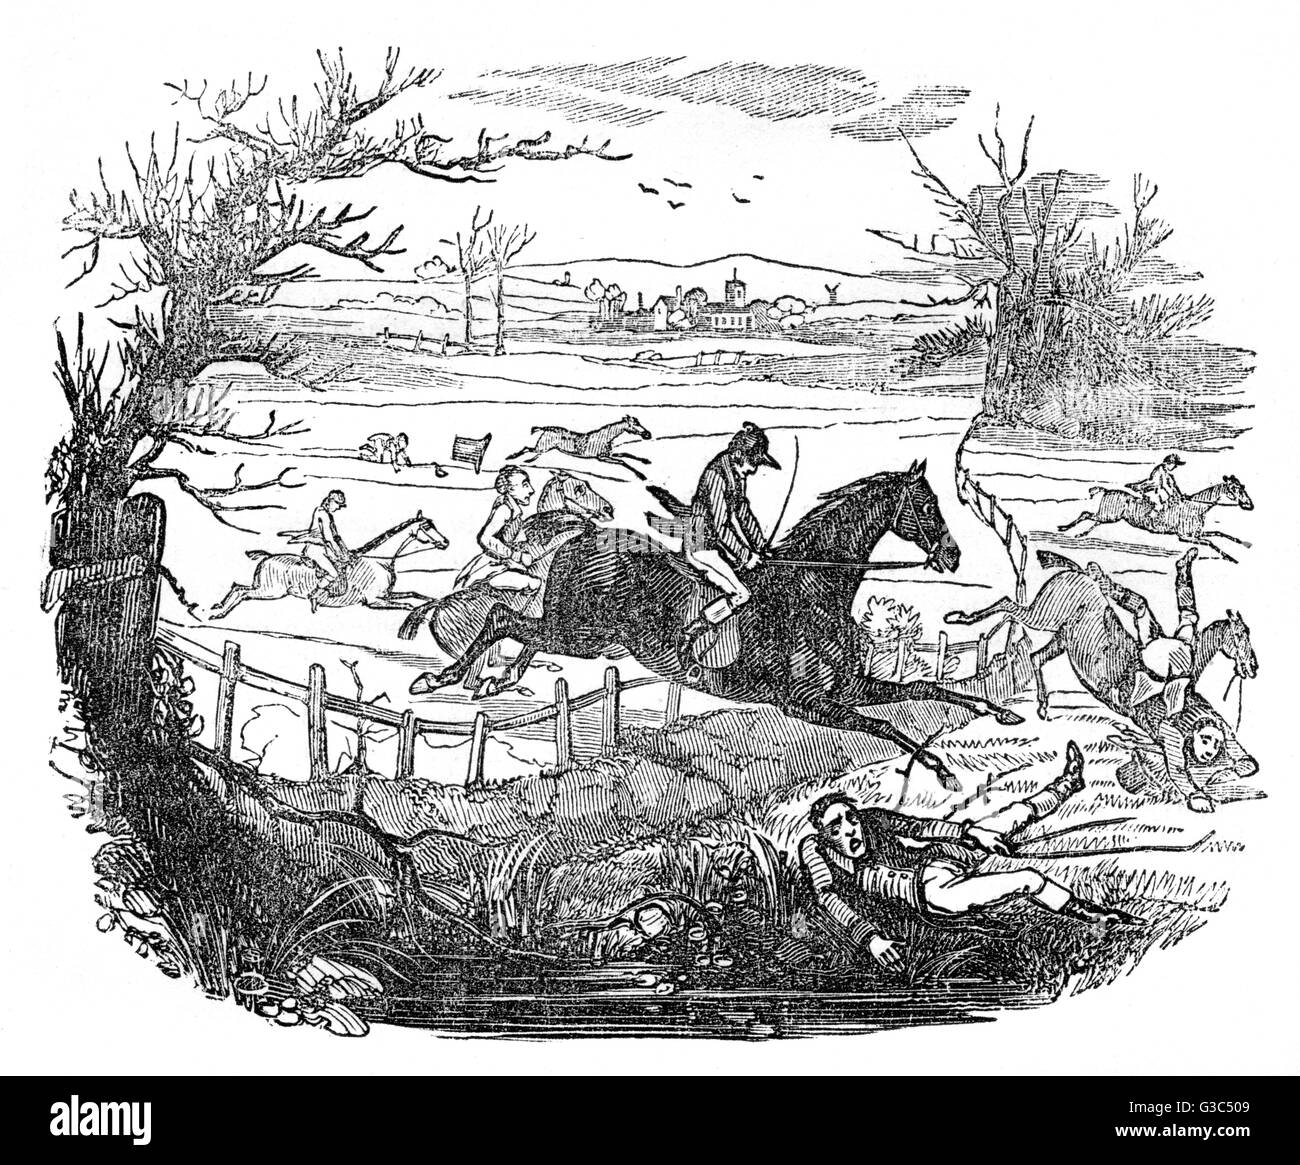 Illustration, Steeplechase at St Albans (or rather in the surrounding countryside) on 8 March 1832, with nineteen Stock Photo